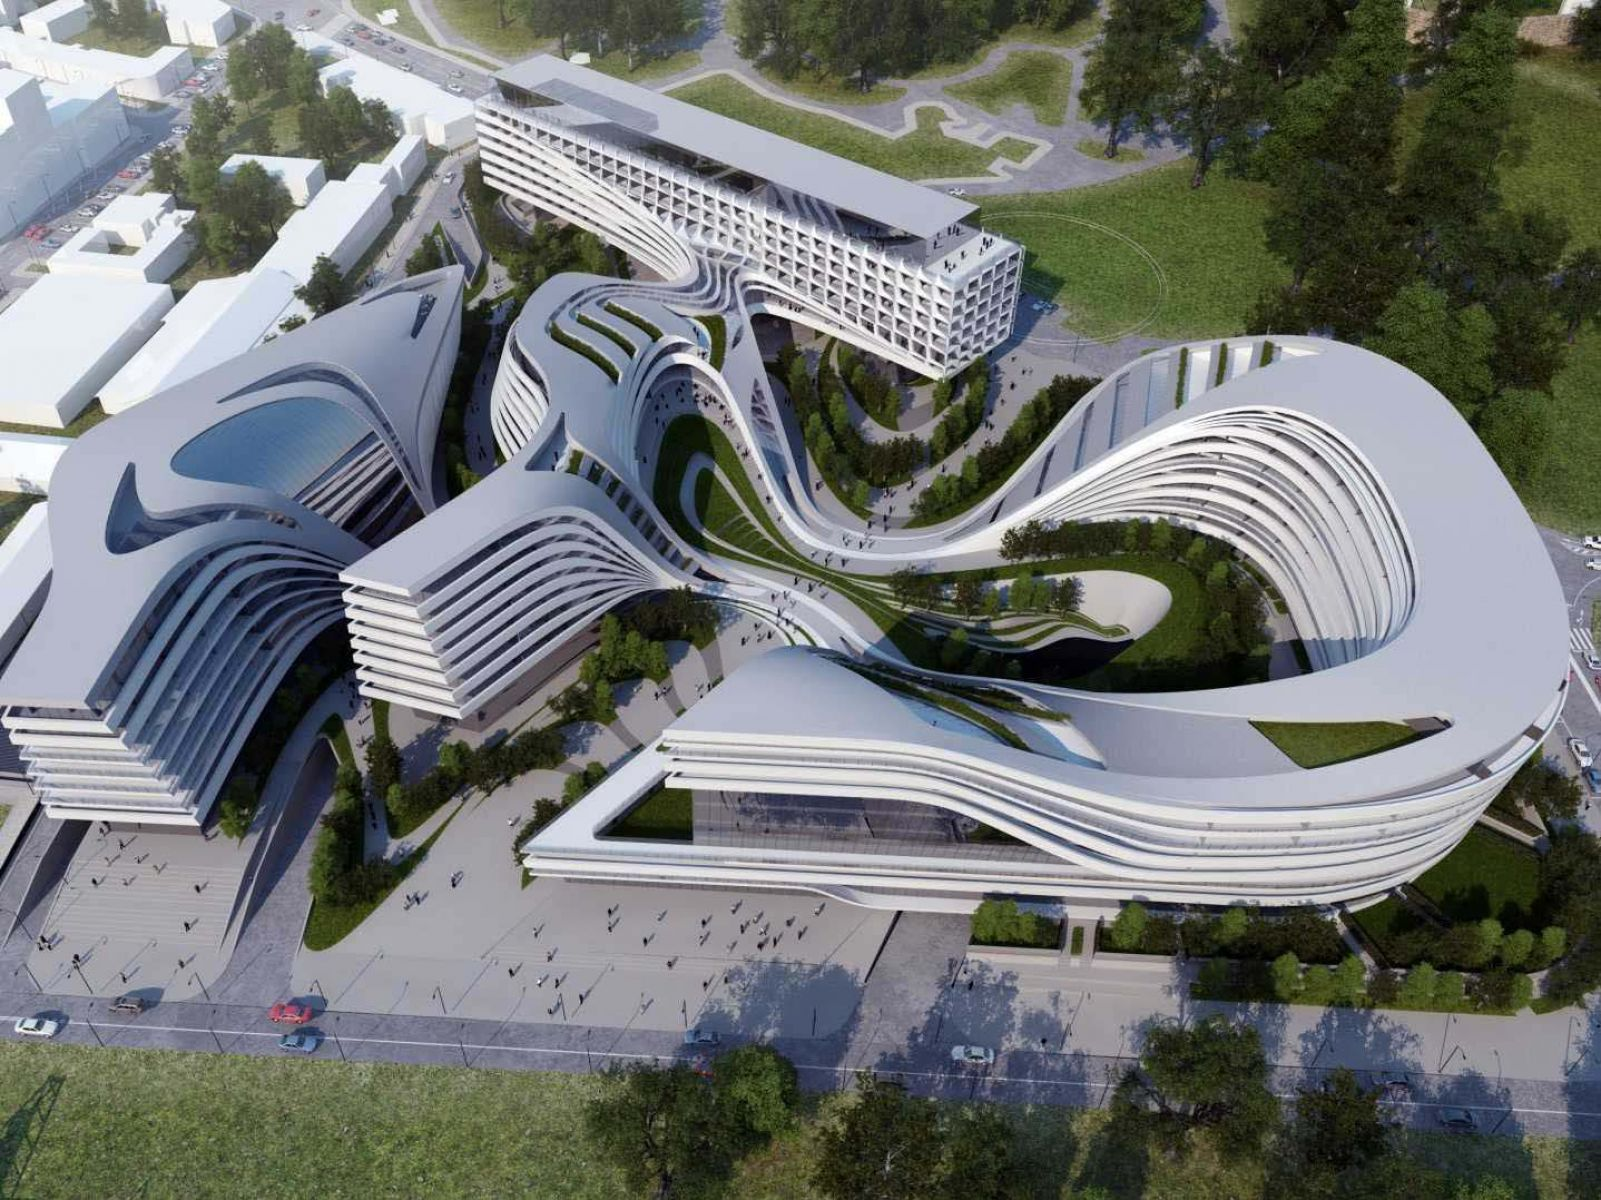 The Otherworldly Architecture of Zaha Hadid HD Architecture and 1601x1200